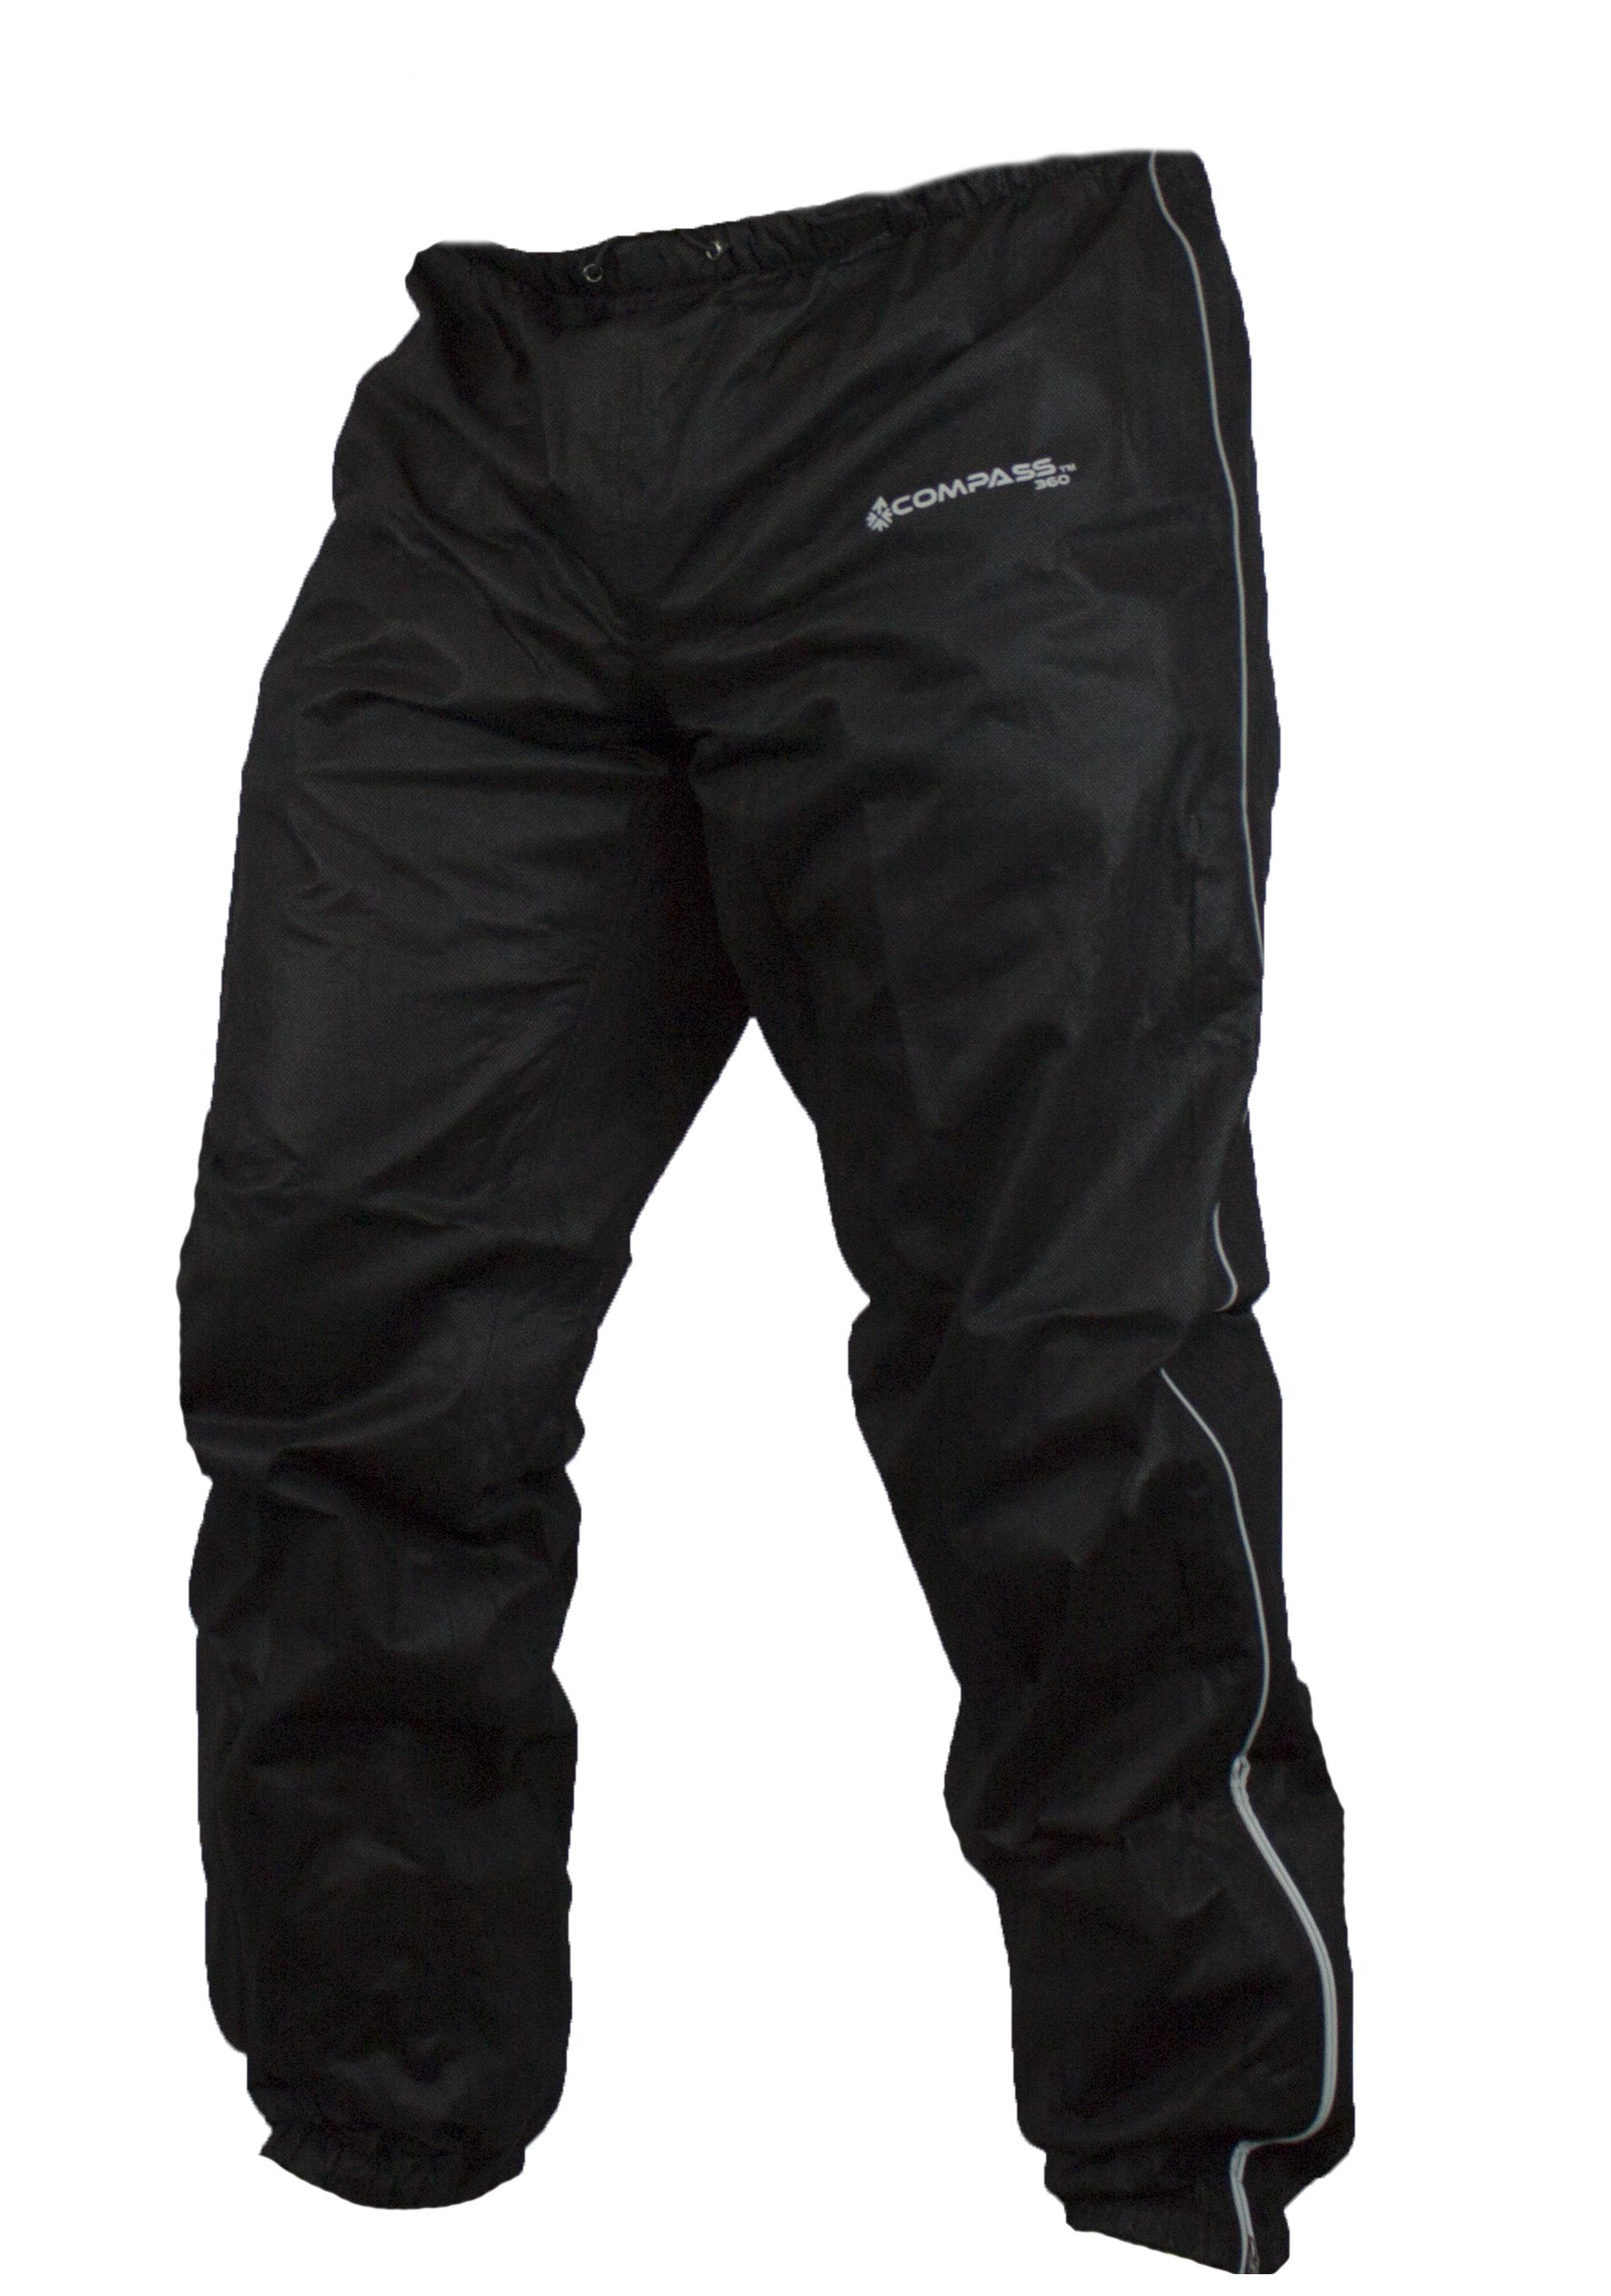 COMPASS 360 Roadtek Reflective Riding Rain Pants, X-Large, Black